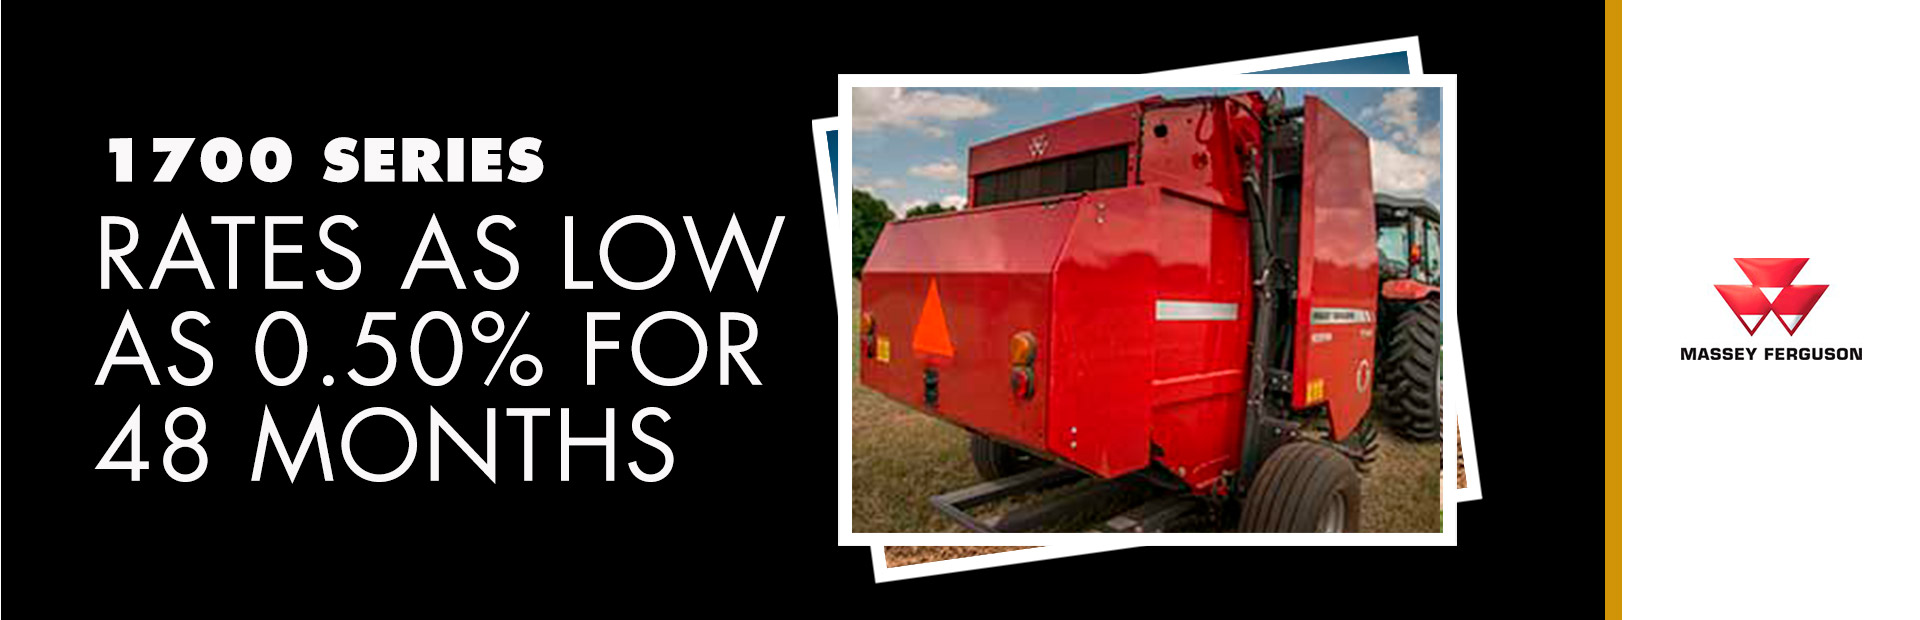 Massey Ferguson - 1700 Series - Rates as low as 0 50% for 48